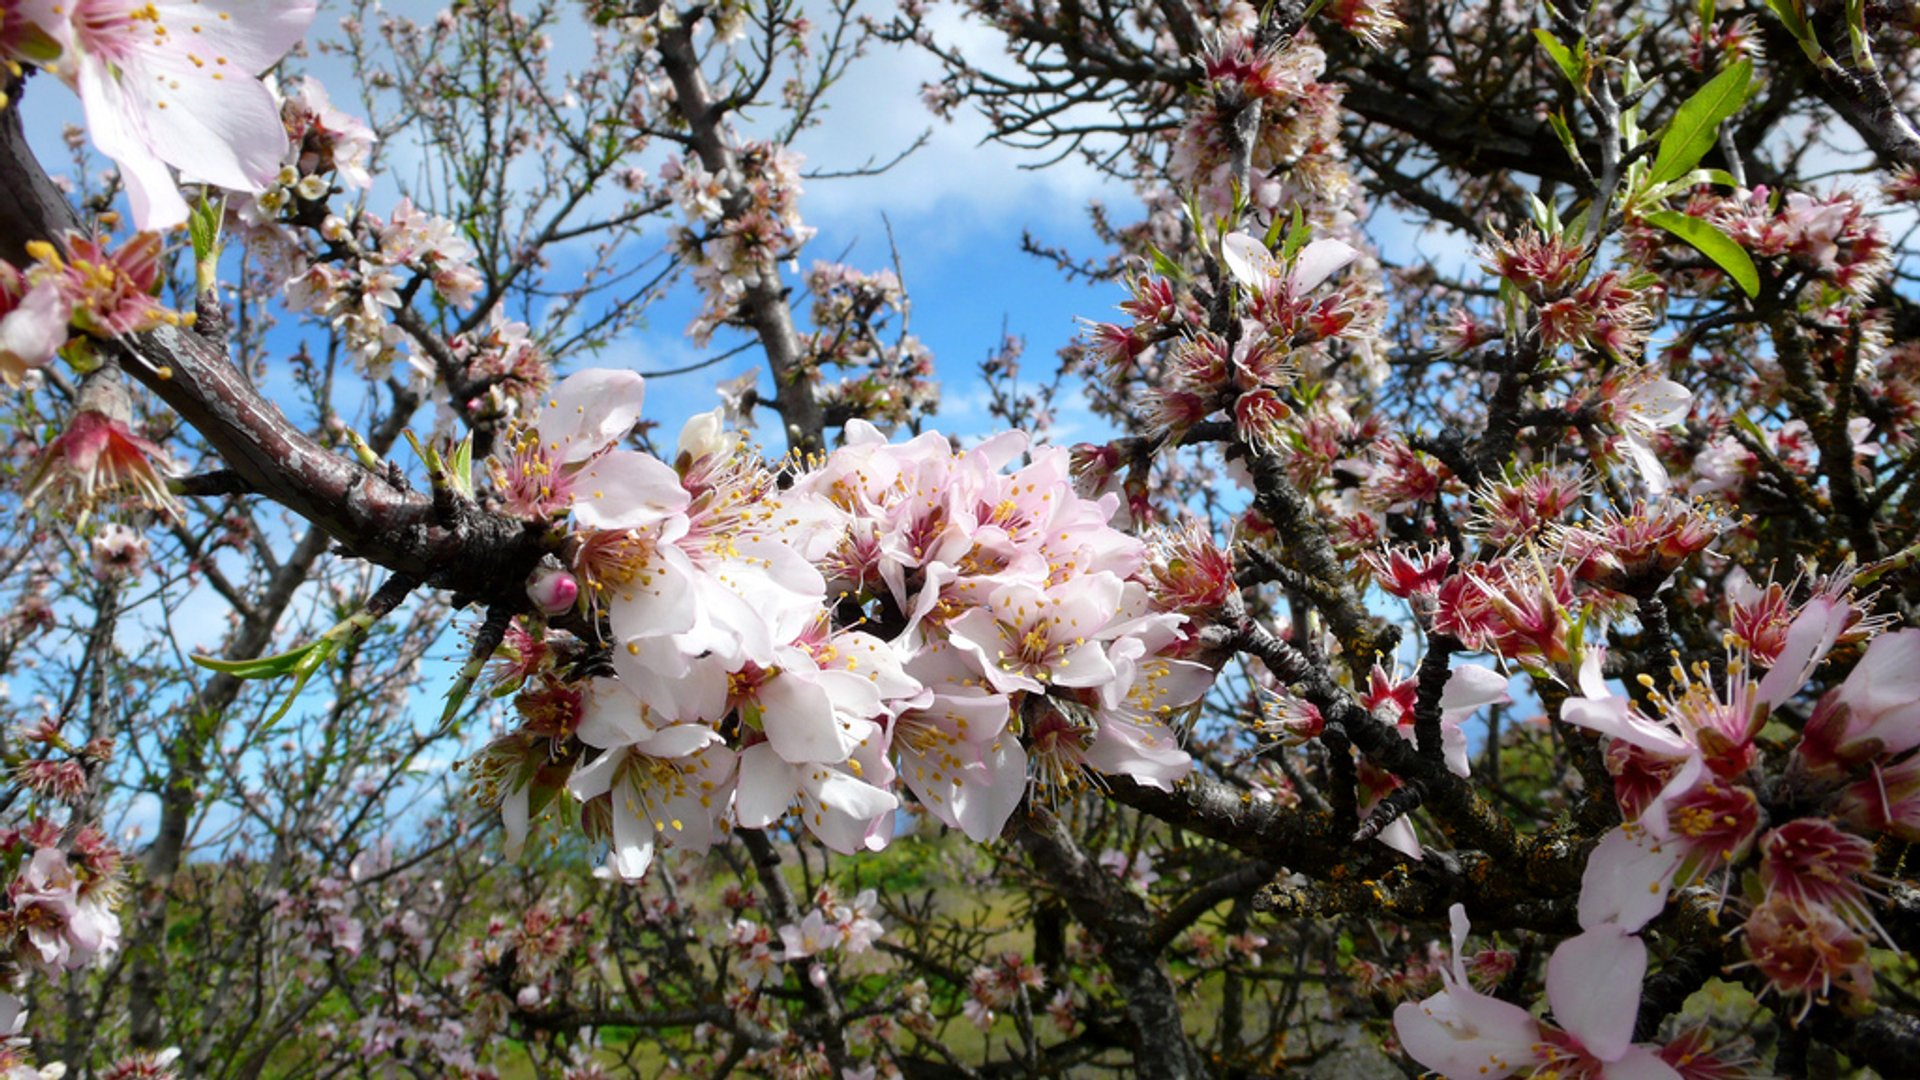 Almond Trees in Bloom in Canary Islands - Best Time